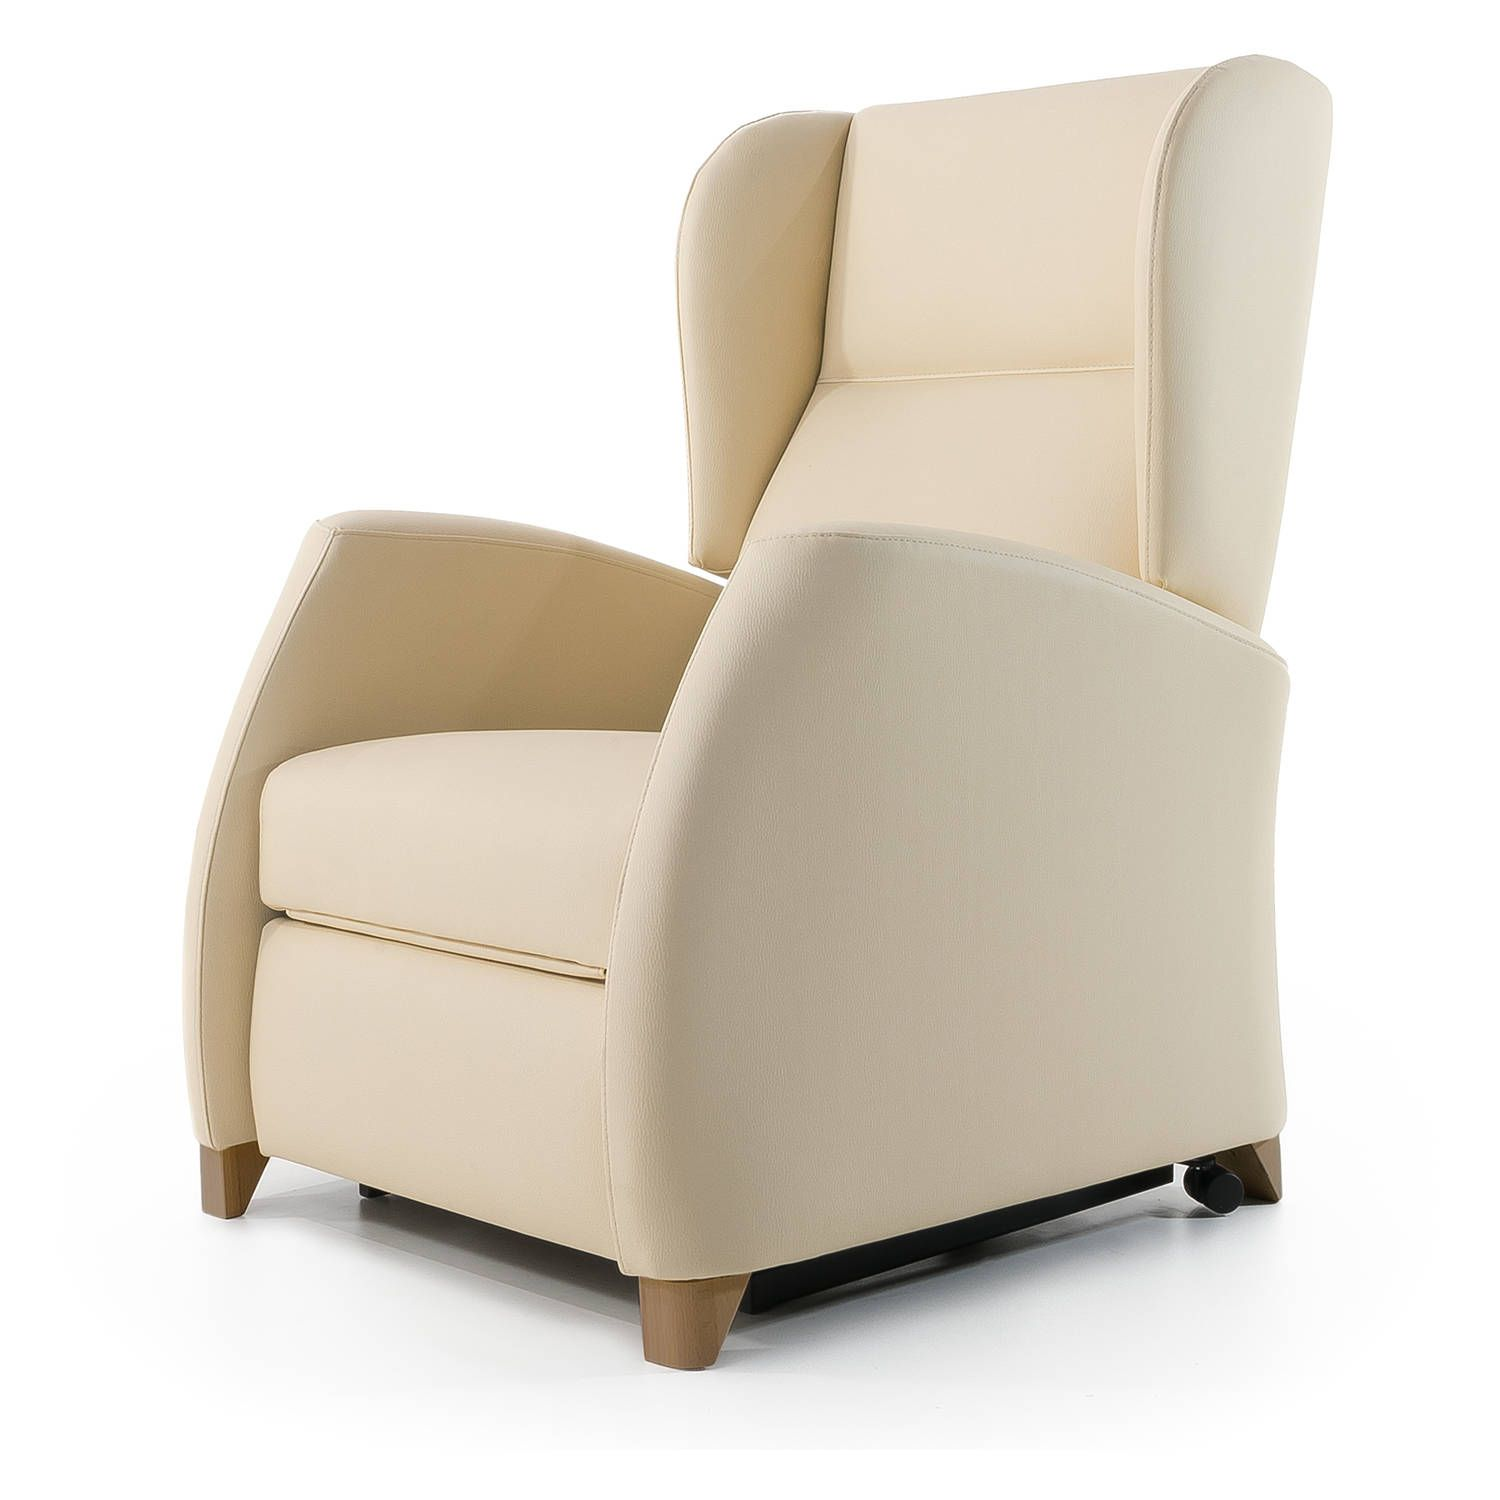 Trending Capella Riser Recliner Chair Rise And Recline Chairs